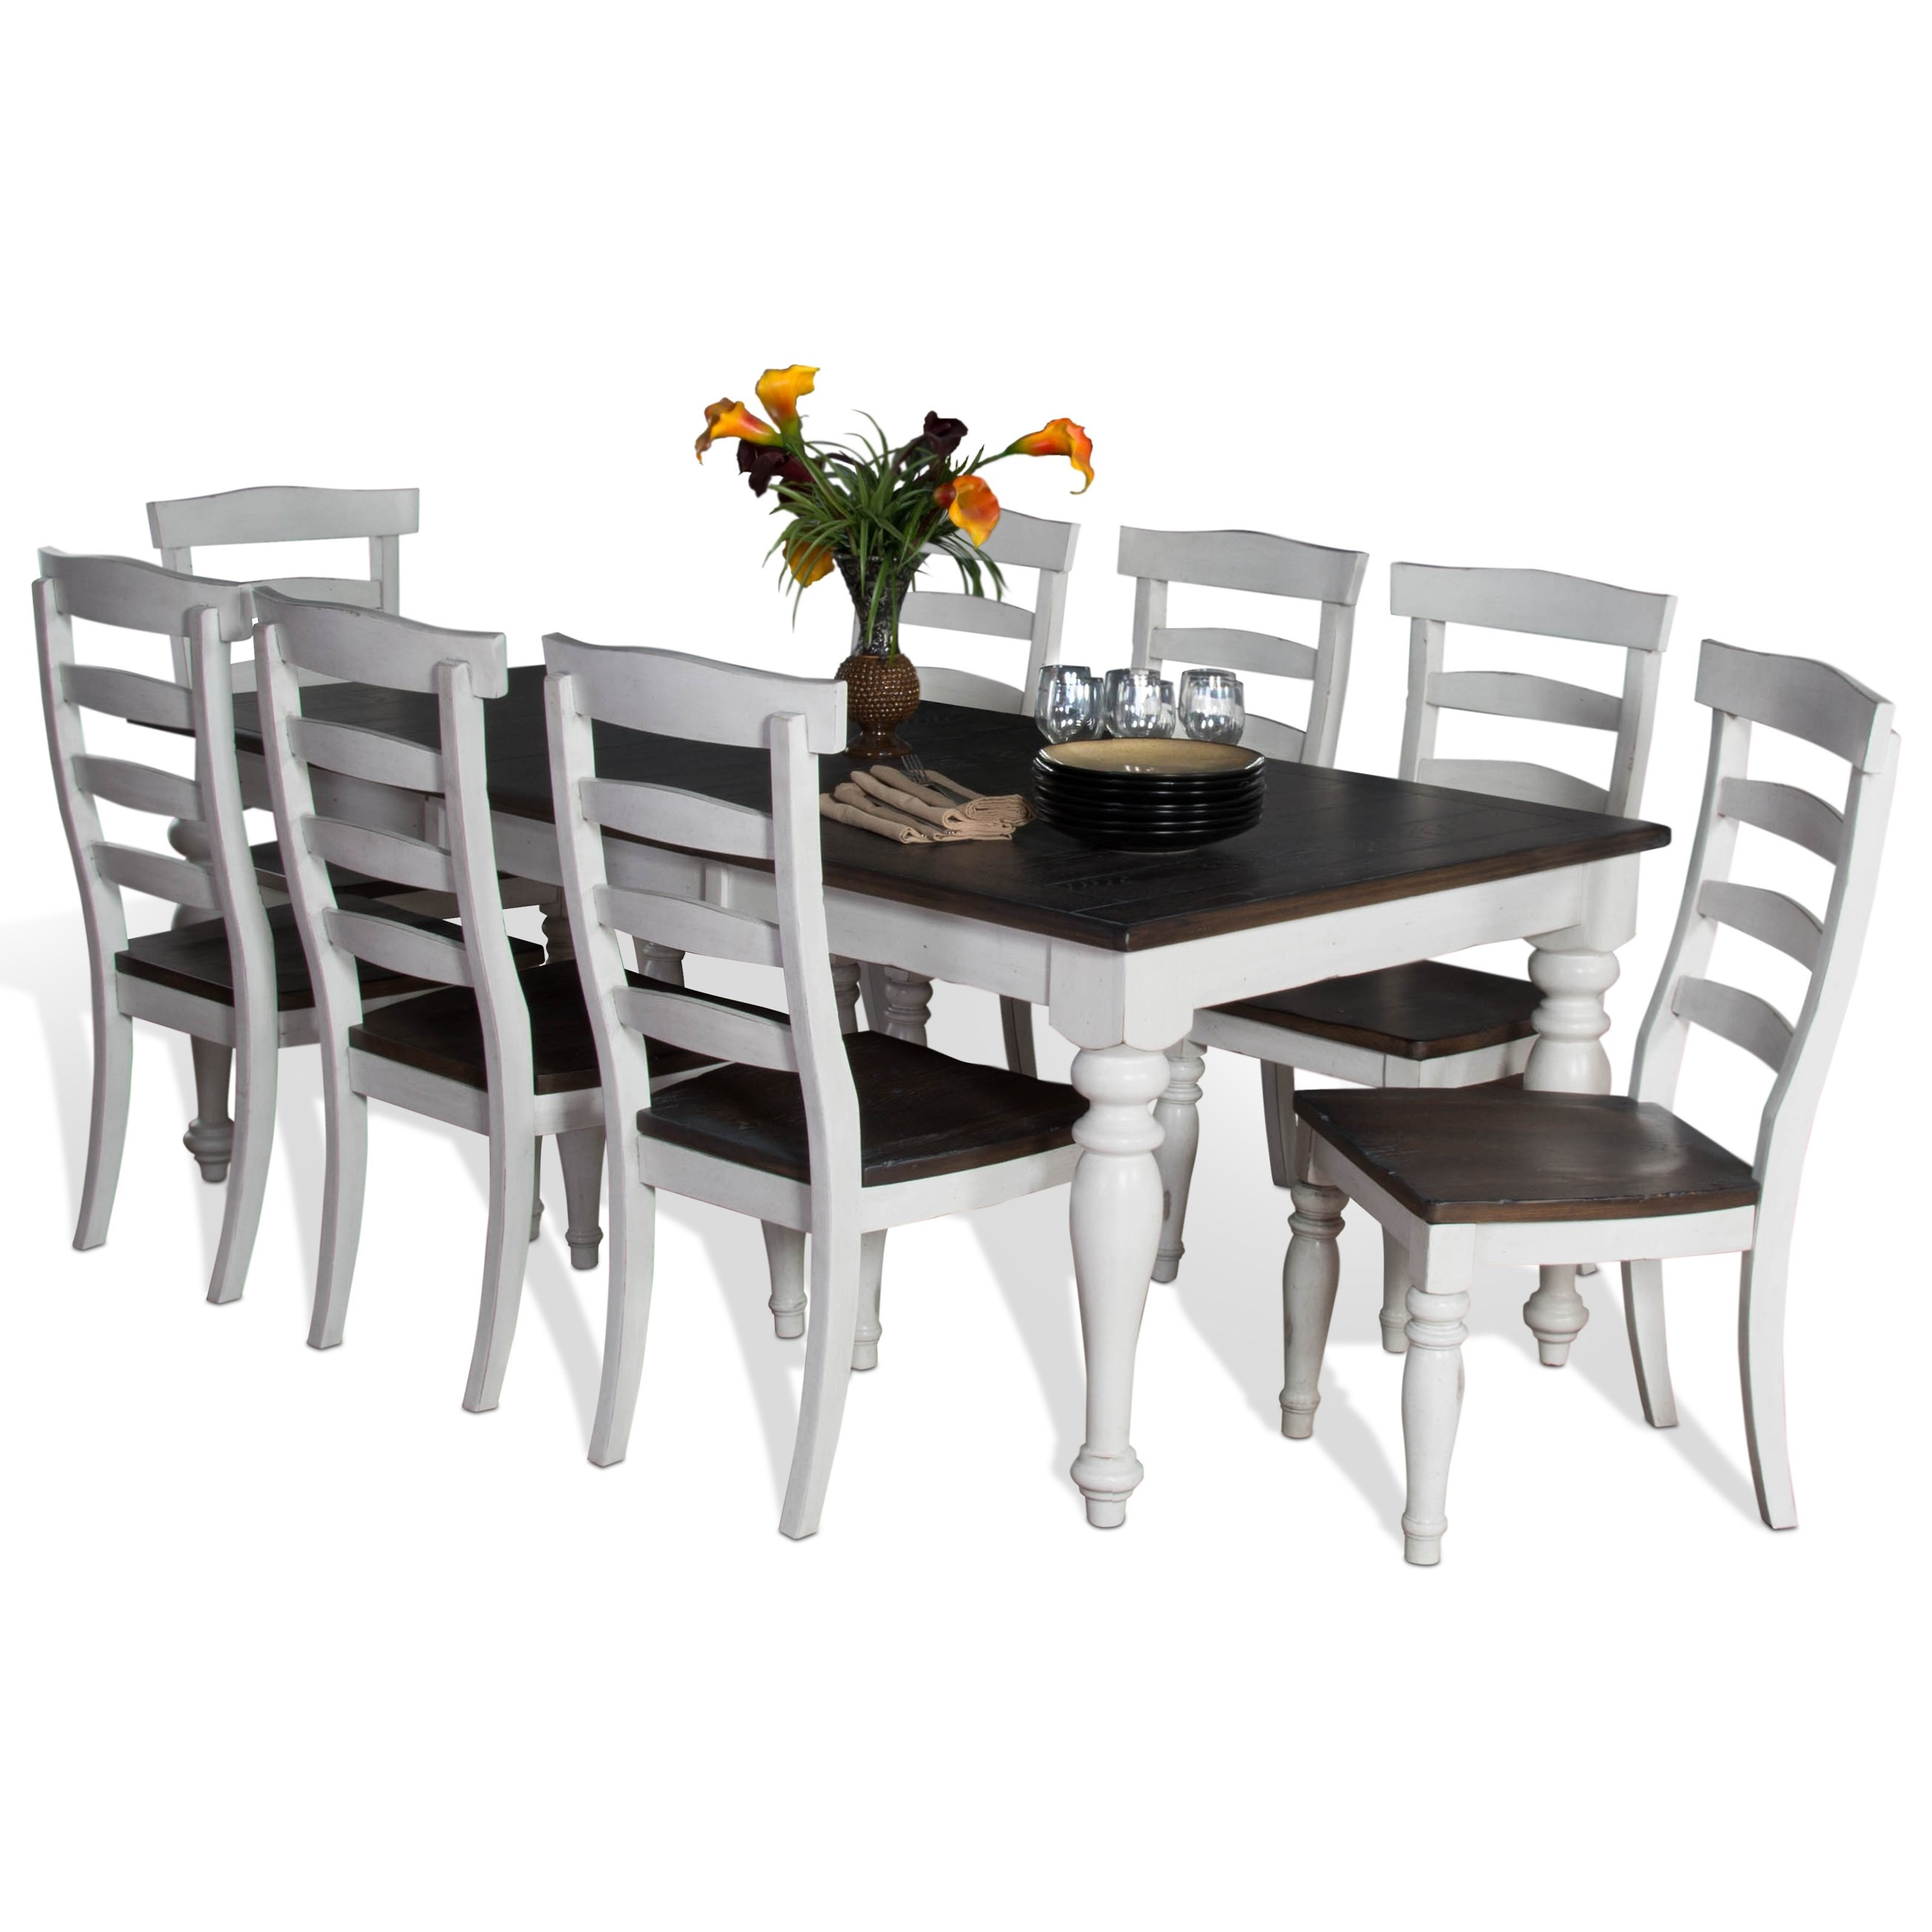 Sunny Designs Bourbon County 9 Piece Extension Dining: dining set design ideas